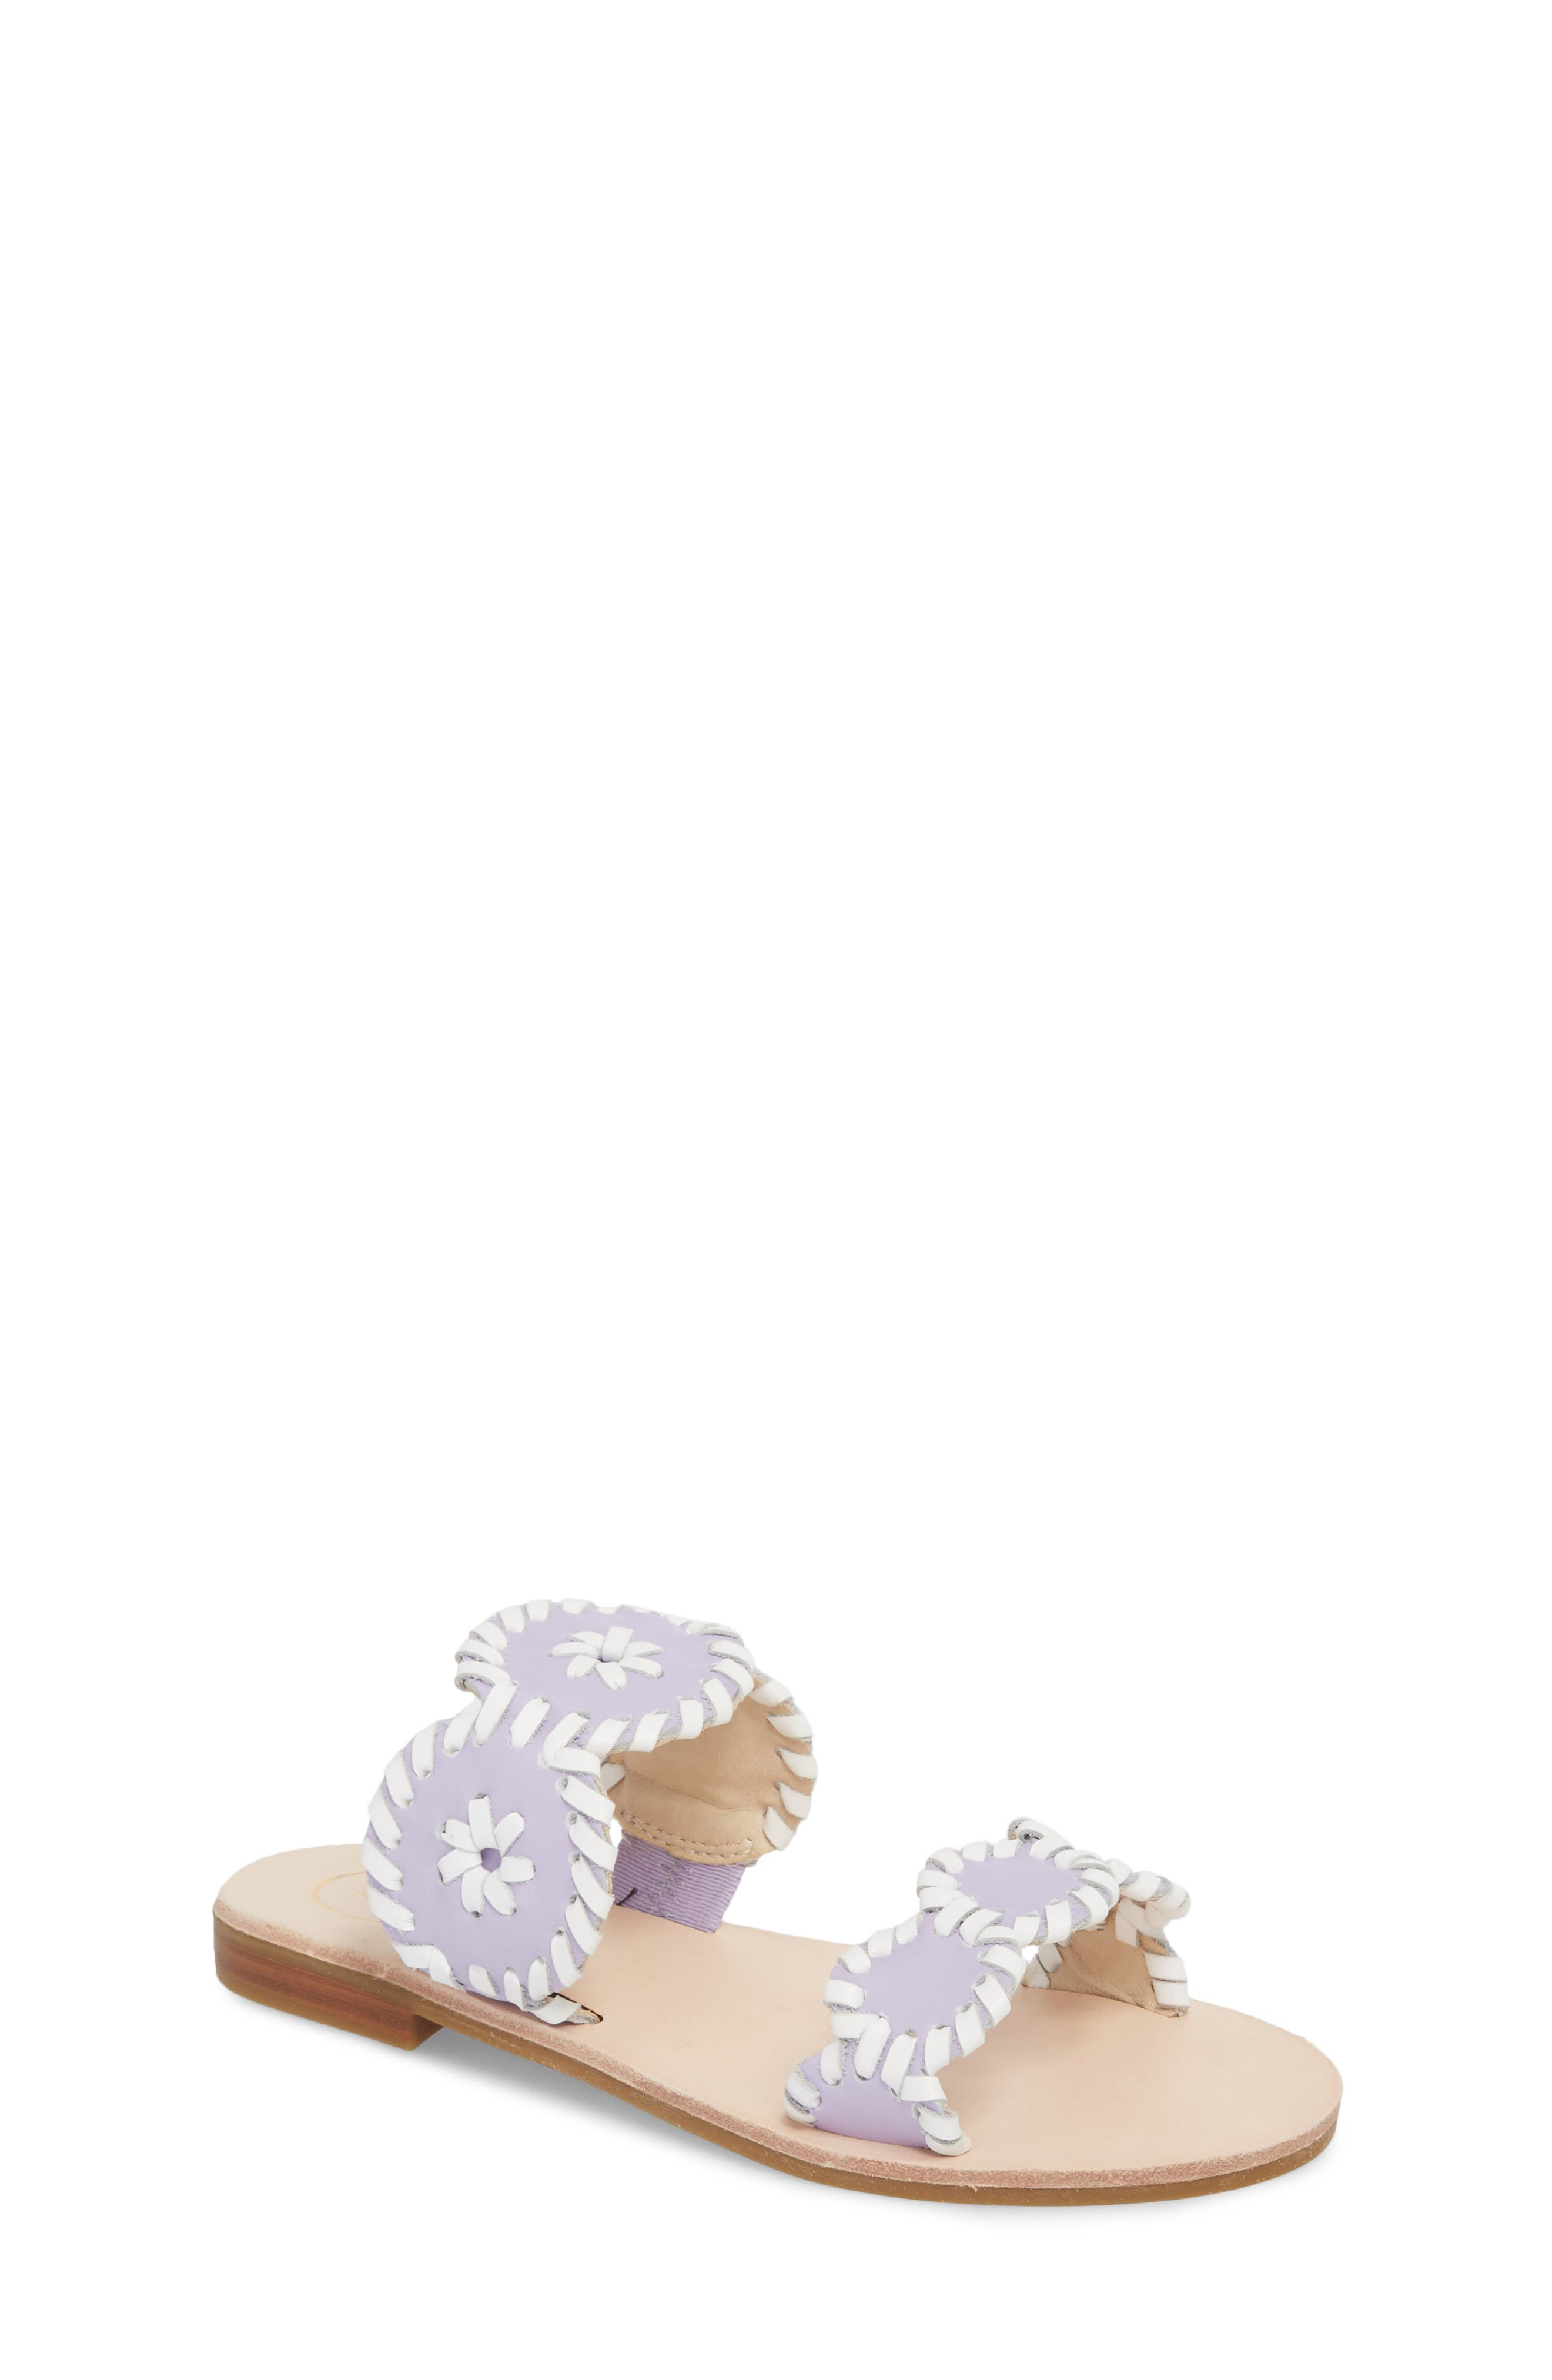 JACK ROGERS Miss Lauren Sandal, Main, color, LILAC/ WHITE LEATHER